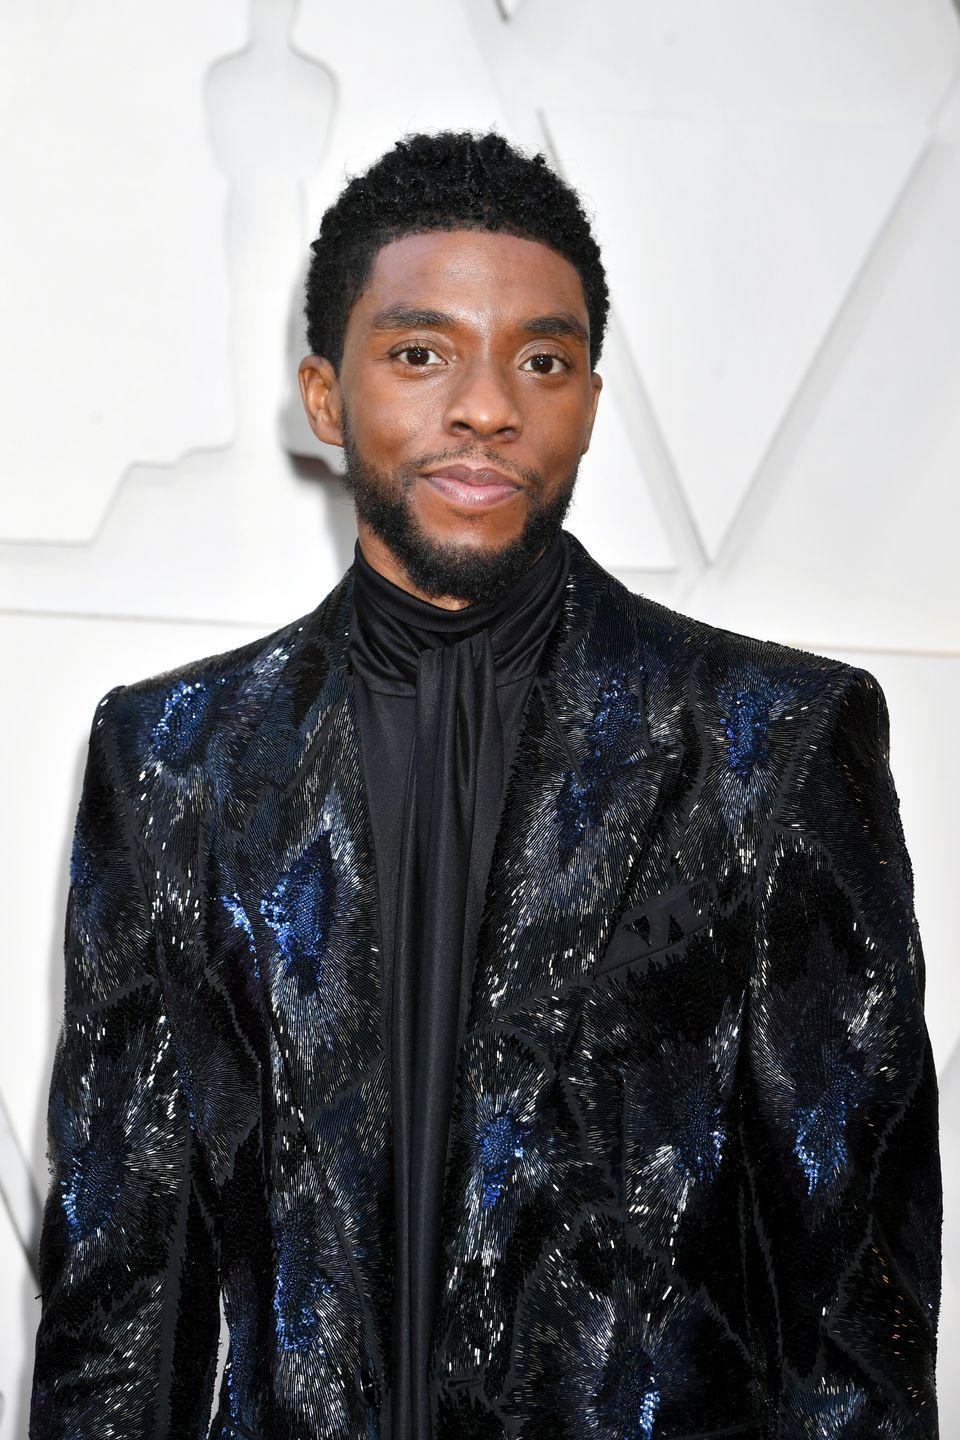 """<p><strong>The role: </strong><a href=""""https://ew.com/movies/2019/11/20/black-panther-chadwick-boseman-drax-audition/"""" rel=""""nofollow noopener"""" target=""""_blank"""" data-ylk=""""slk:Drax the Destroyer"""" class=""""link rapid-noclick-resp"""">Drax the Destroyer</a> in<em> Guardians of the Galaxy</em> </p><p><strong>Who *actually* played it:</strong> Dave Bautista</p><p><strong>The role they played instead: </strong>T'Challa in <em>Black Panther</em></p><p>Boseman said that after getting turned down for the role of Drax, the Marvel Studios casting director, Sarah Finn, said she kept him in mind when it came time to cast the <em>Black Panther</em> lead.</p>"""